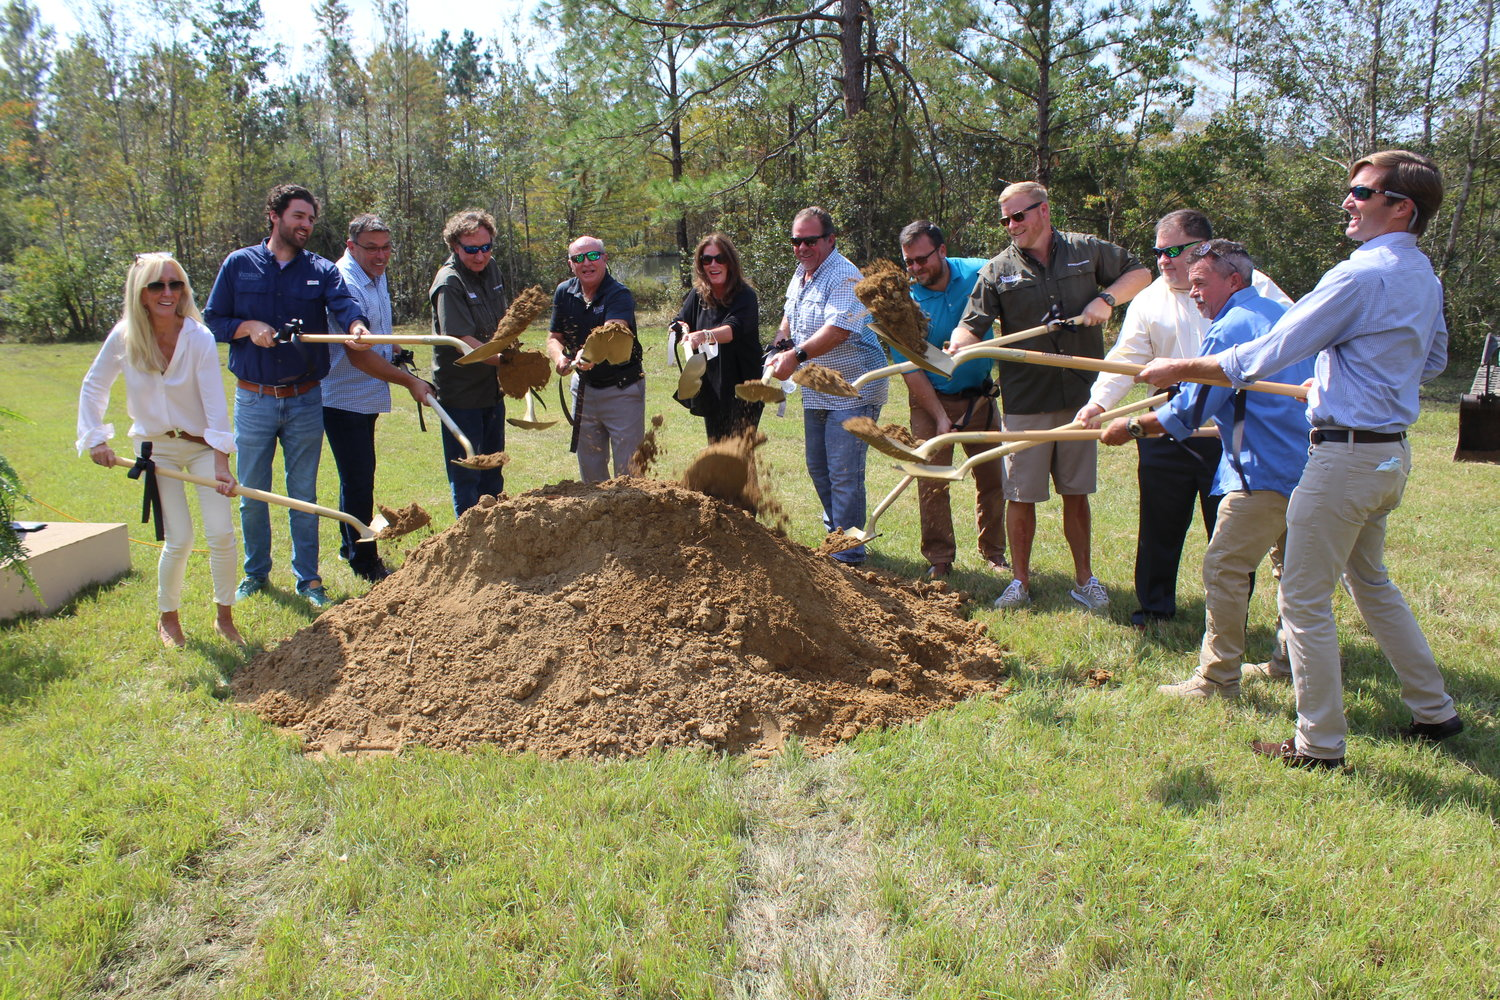 Officials, staff members and board members with Youth-Gulf Coast break ground on a new transitional living home on Monday, Oct. 12 at the facility located east of Summerdale.